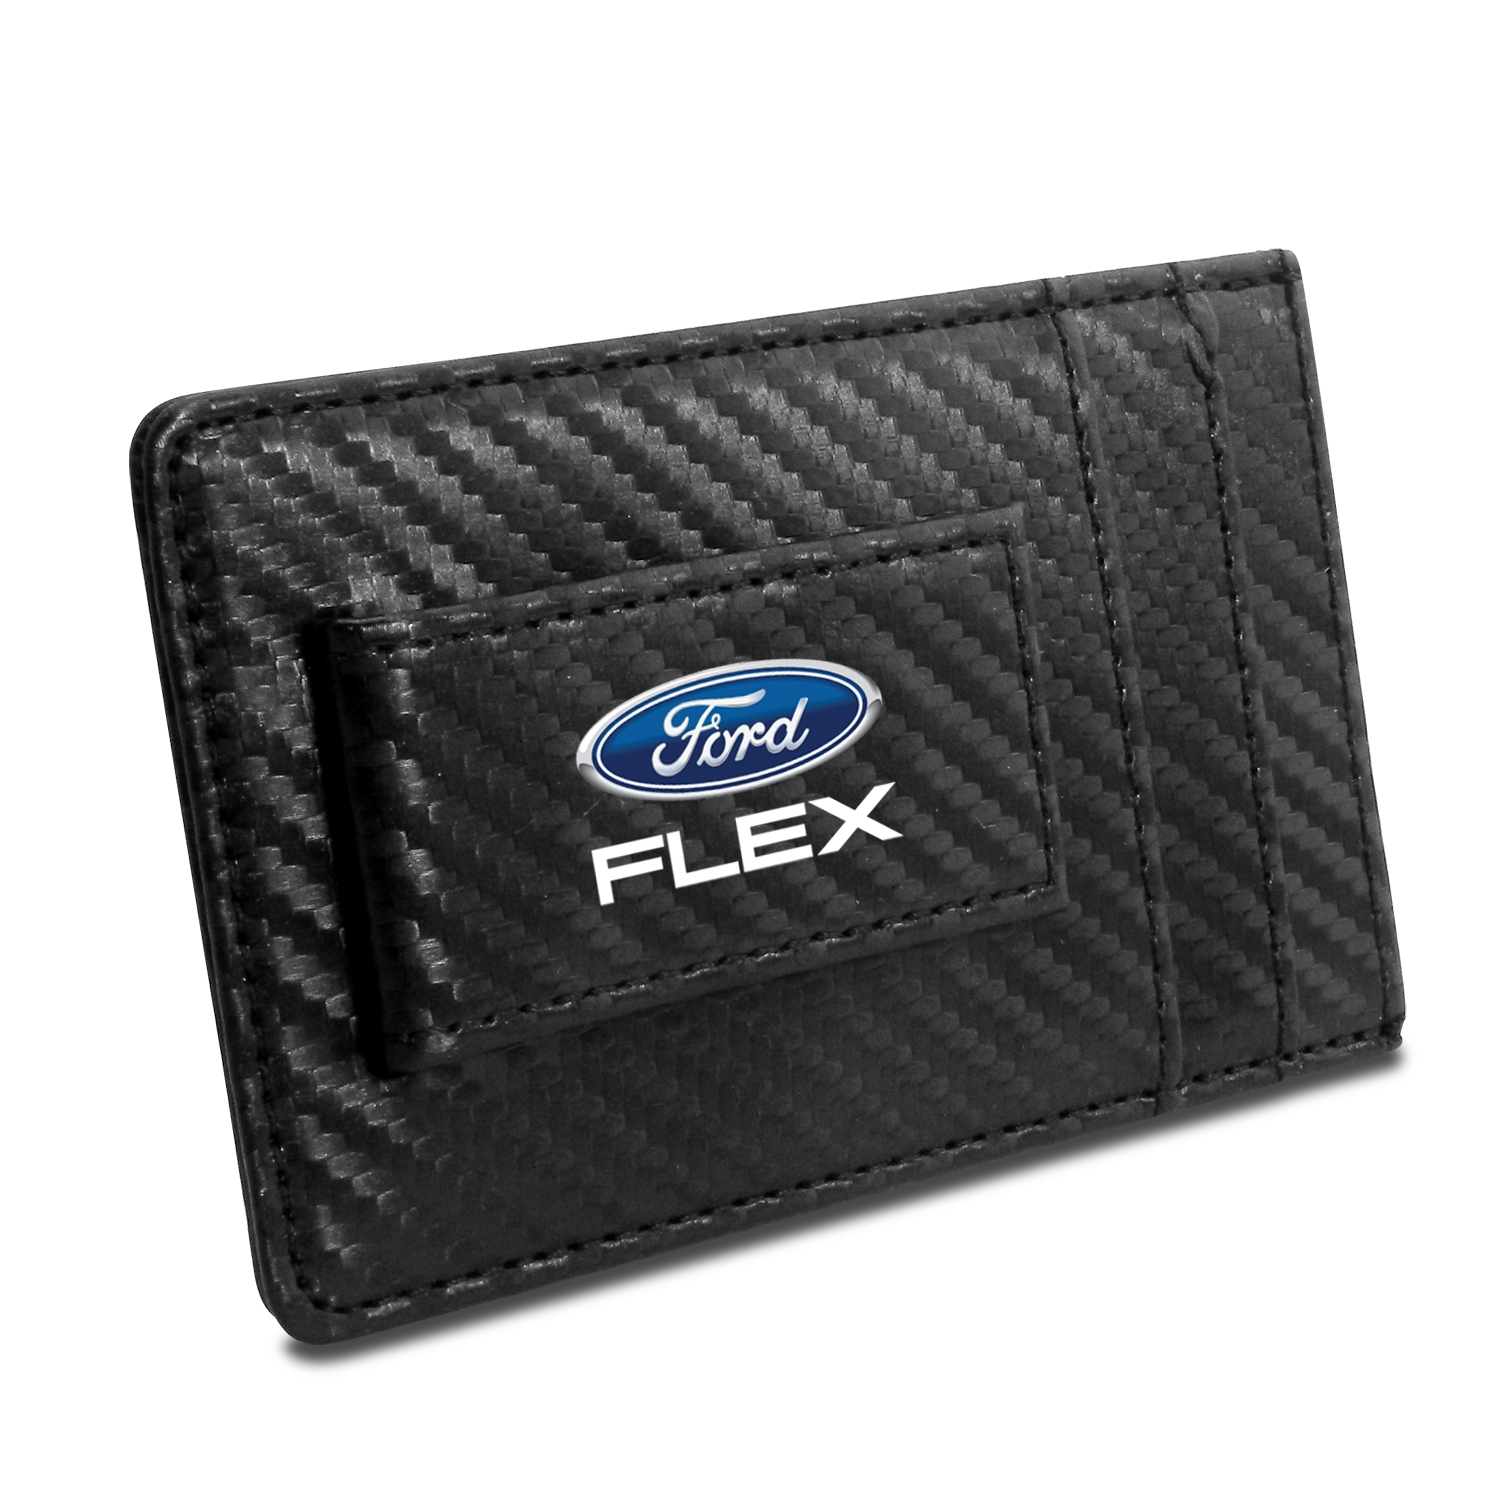 Ford Flex Black Carbon Fiber RFID Card Holder Wallet